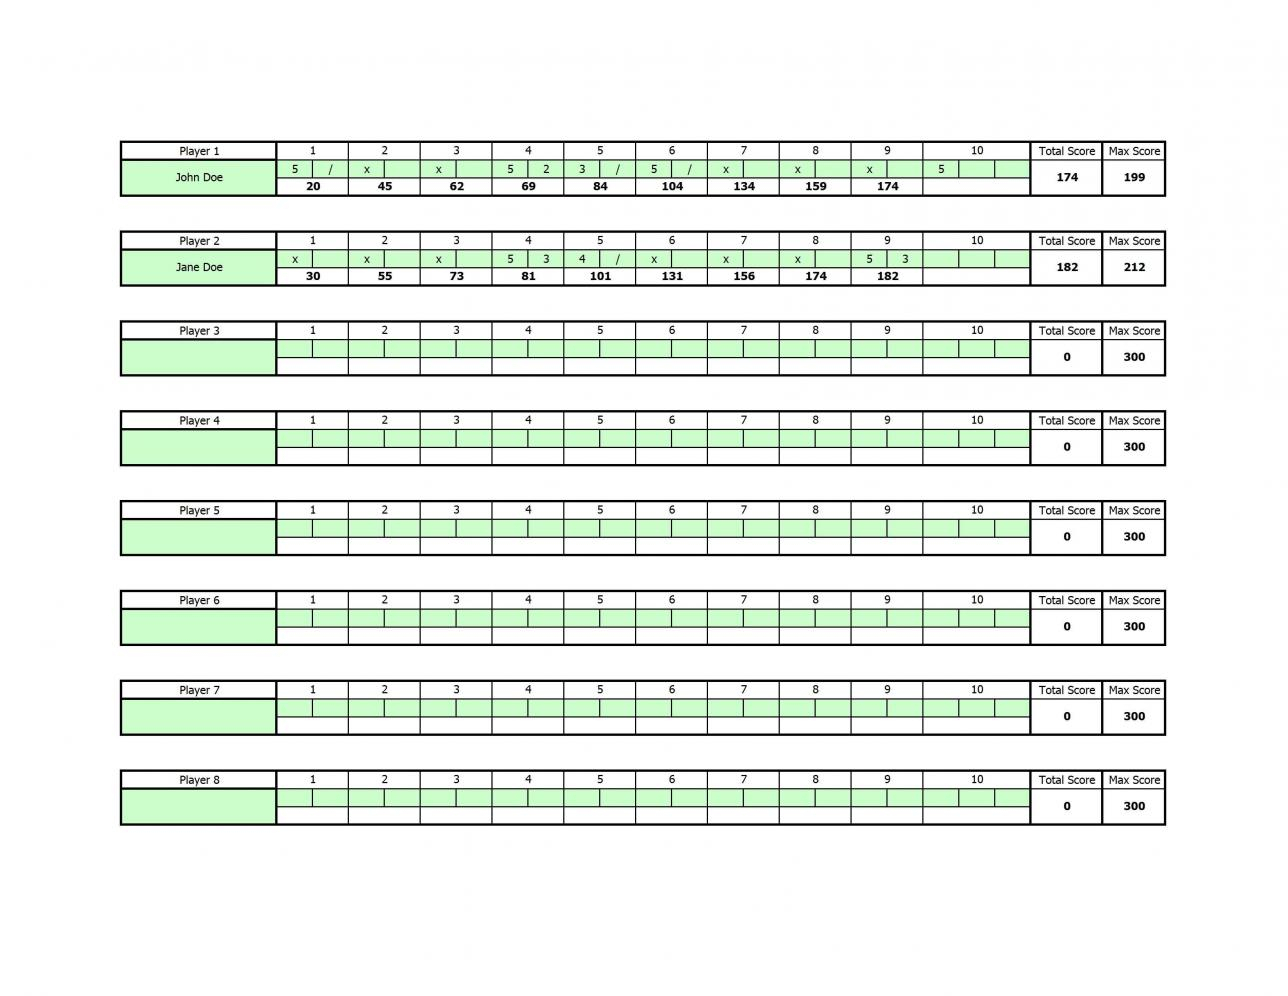 Bowling Stats Spreadsheet Intended For Bowling Scoring Sheet Excel  Cheapscplays Bowling Stats Spreadsheet Printable Spreadshee Printable Spreadshee bowling stats spreadsheet